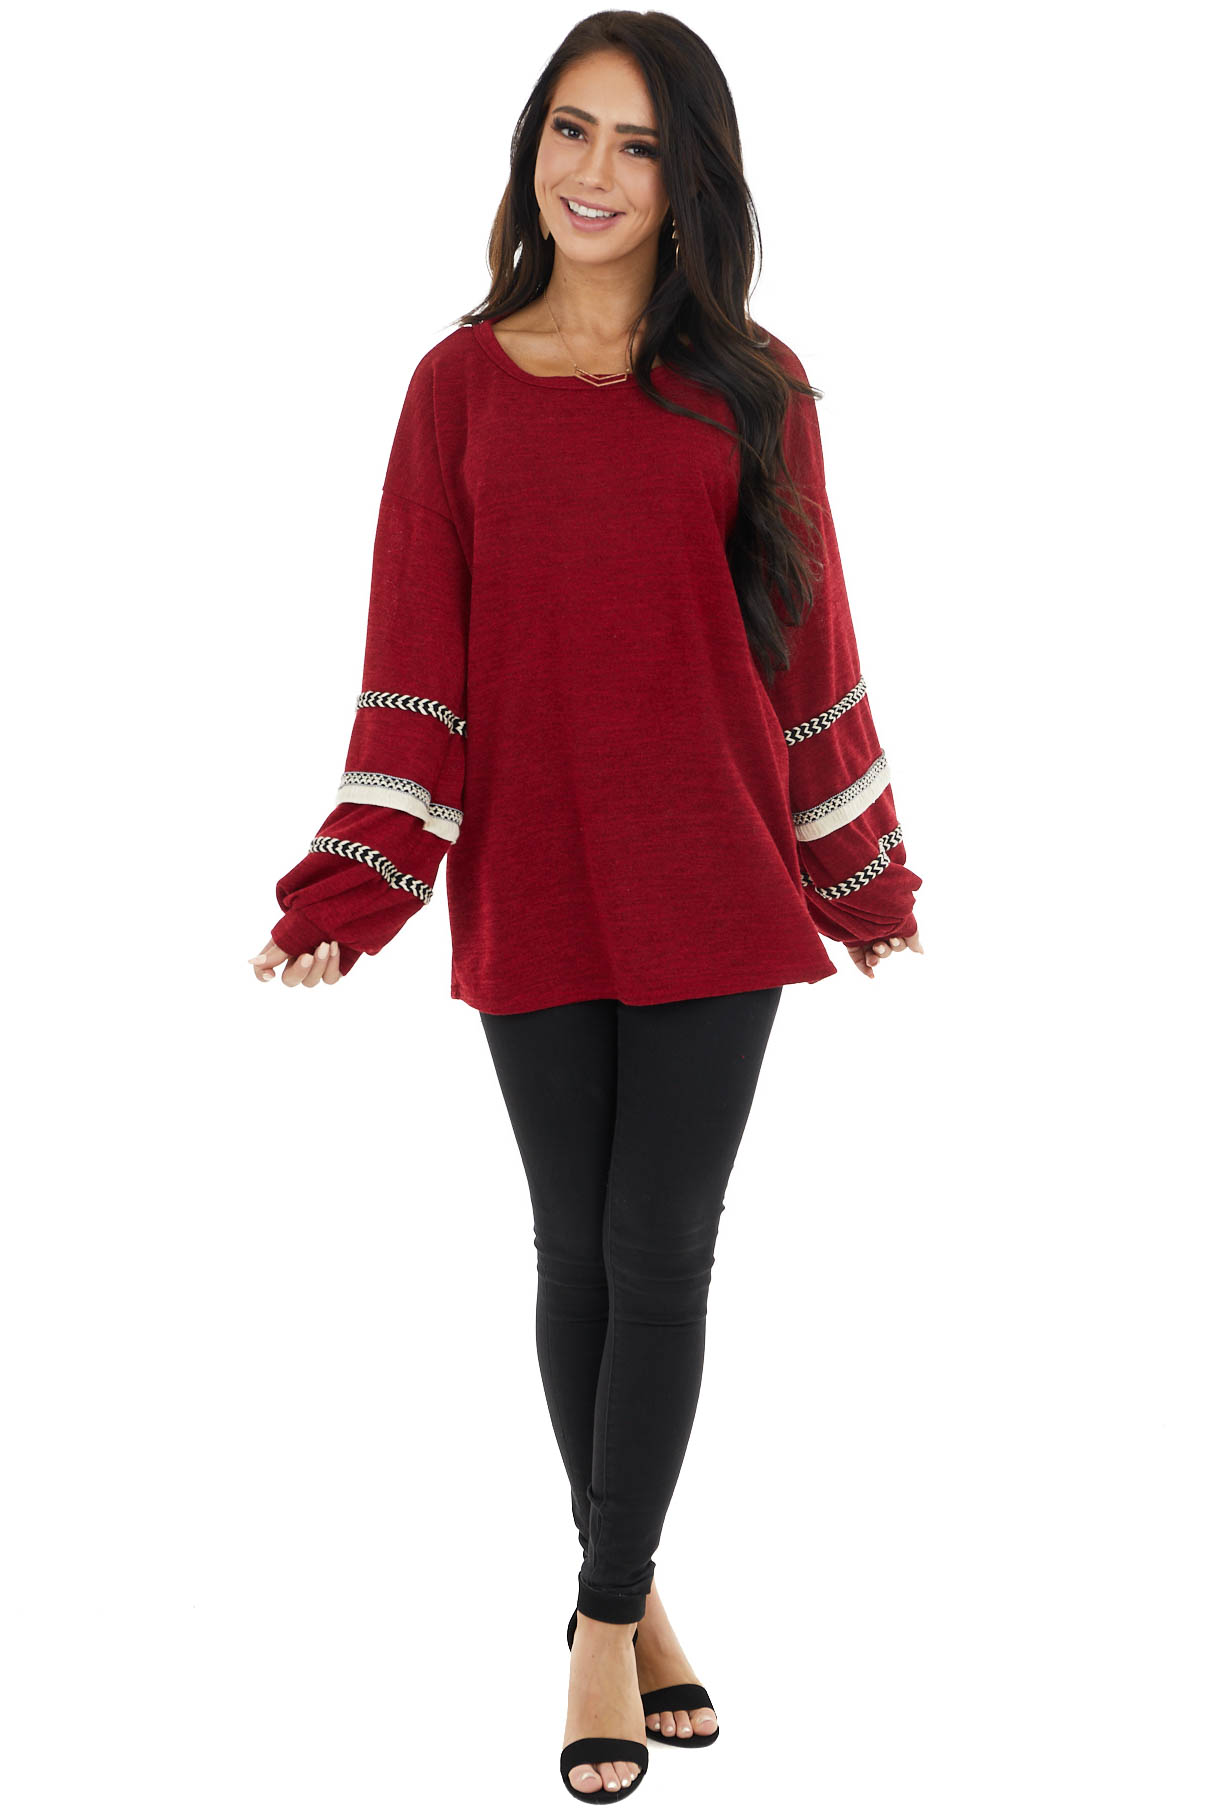 Burgundy Long Bubble Sleeve Top with Textured Thread Detail